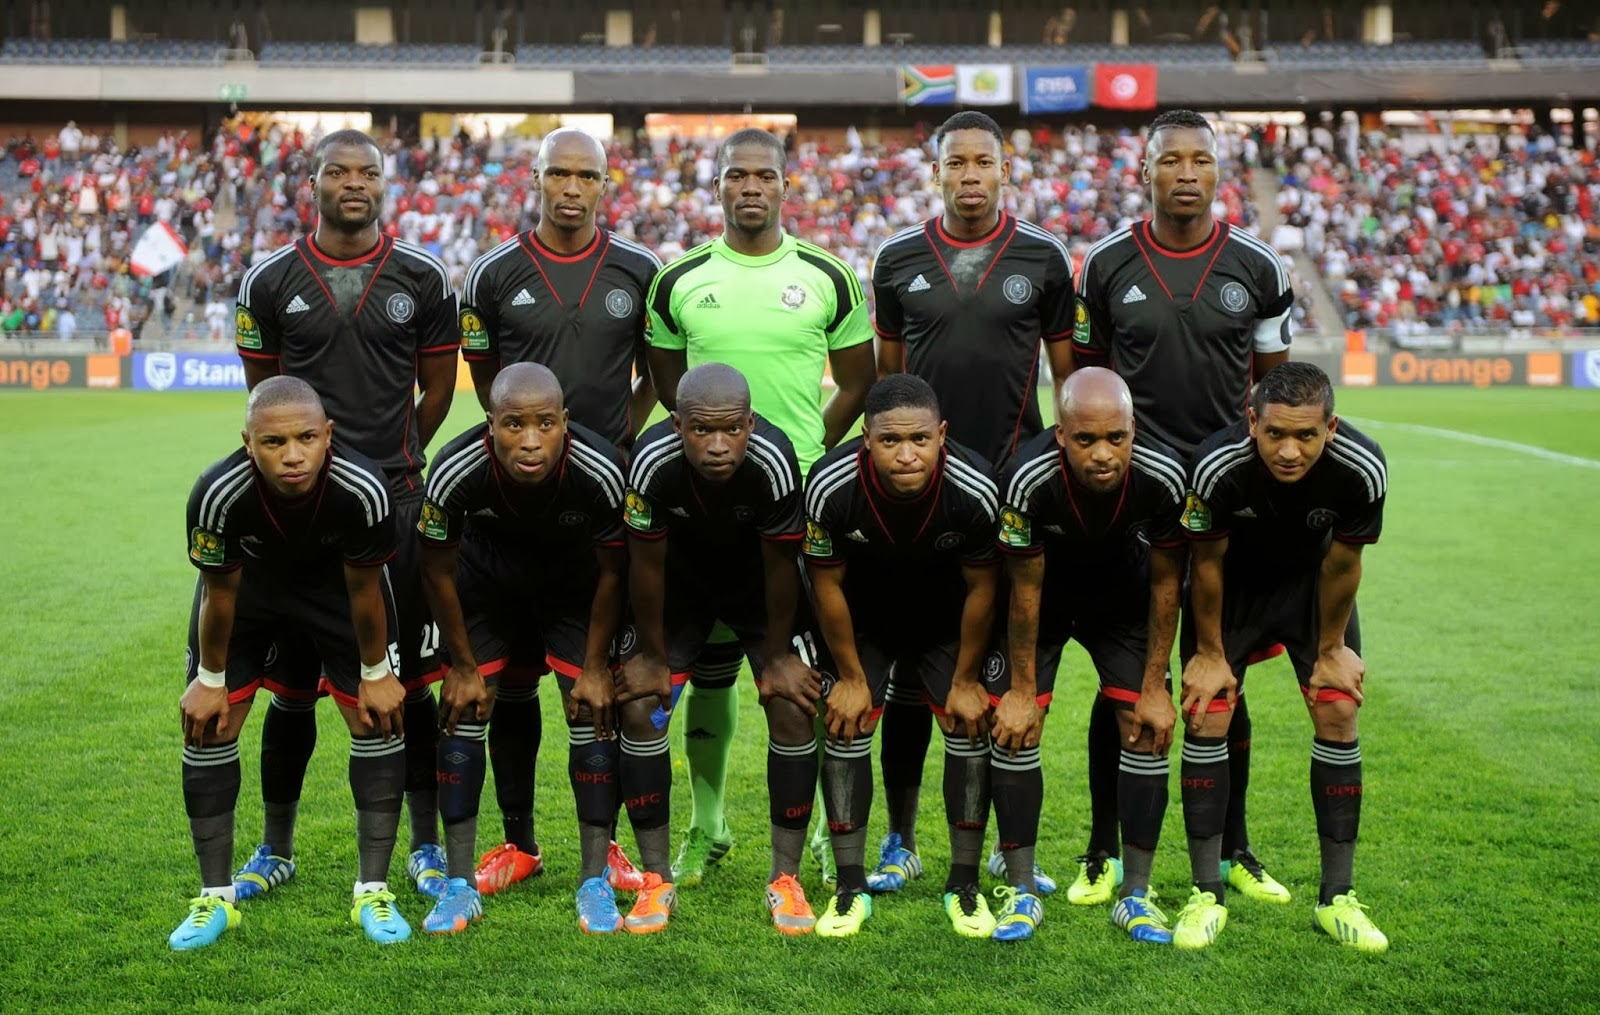 Orlando Pirates are representing South Africa | DISKIOFF